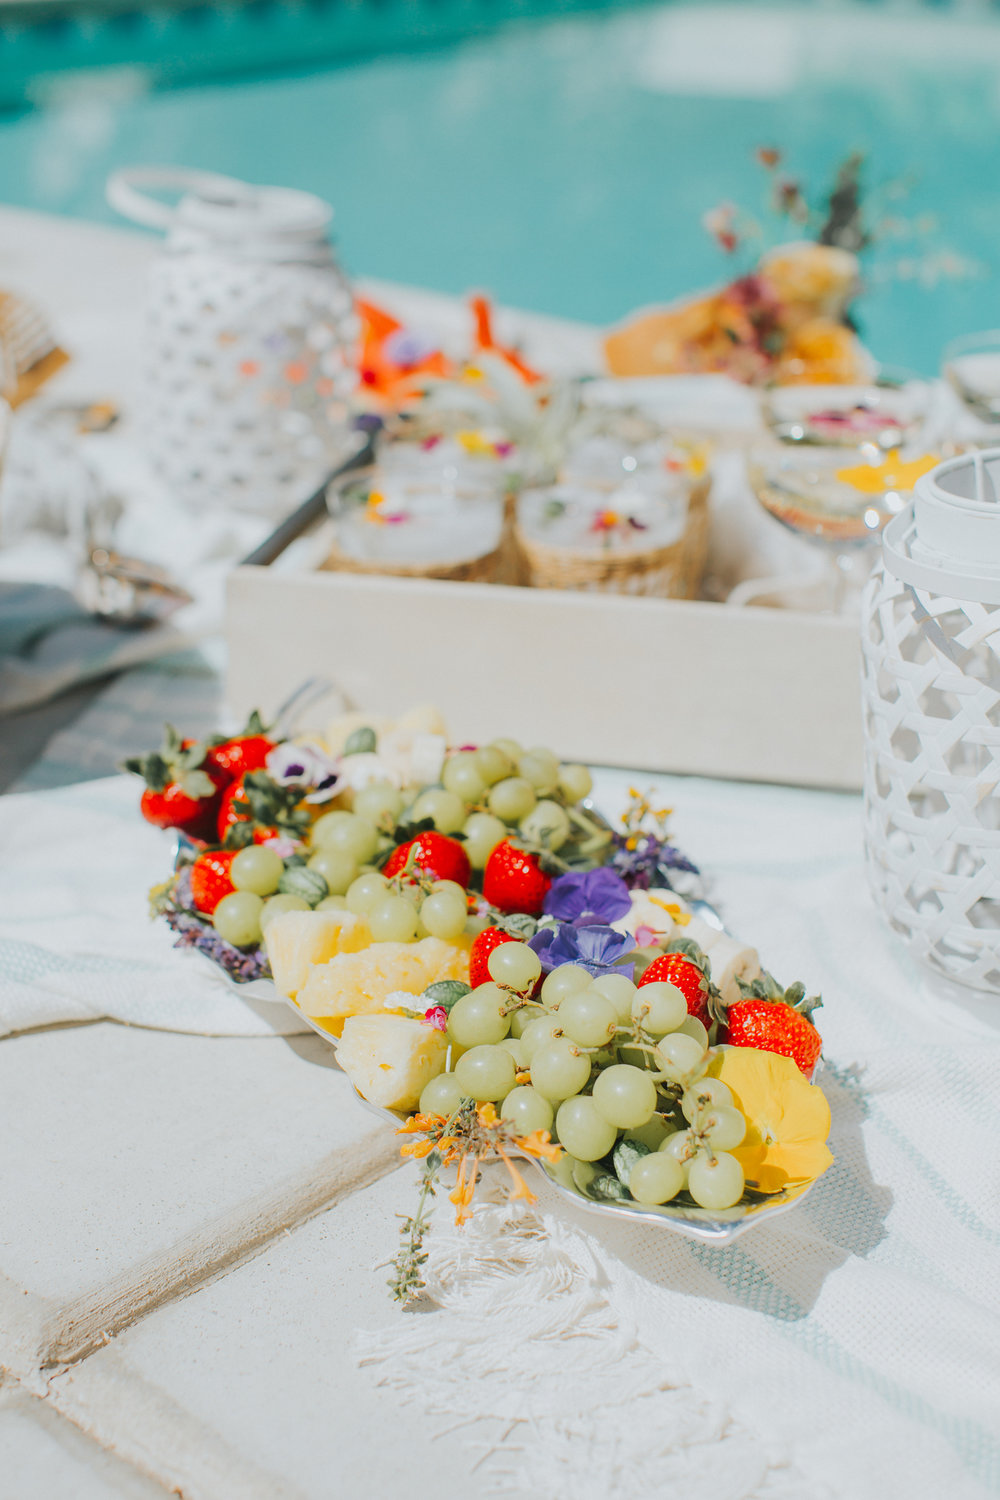 Pool party fruit platter | A Fabulous Fete